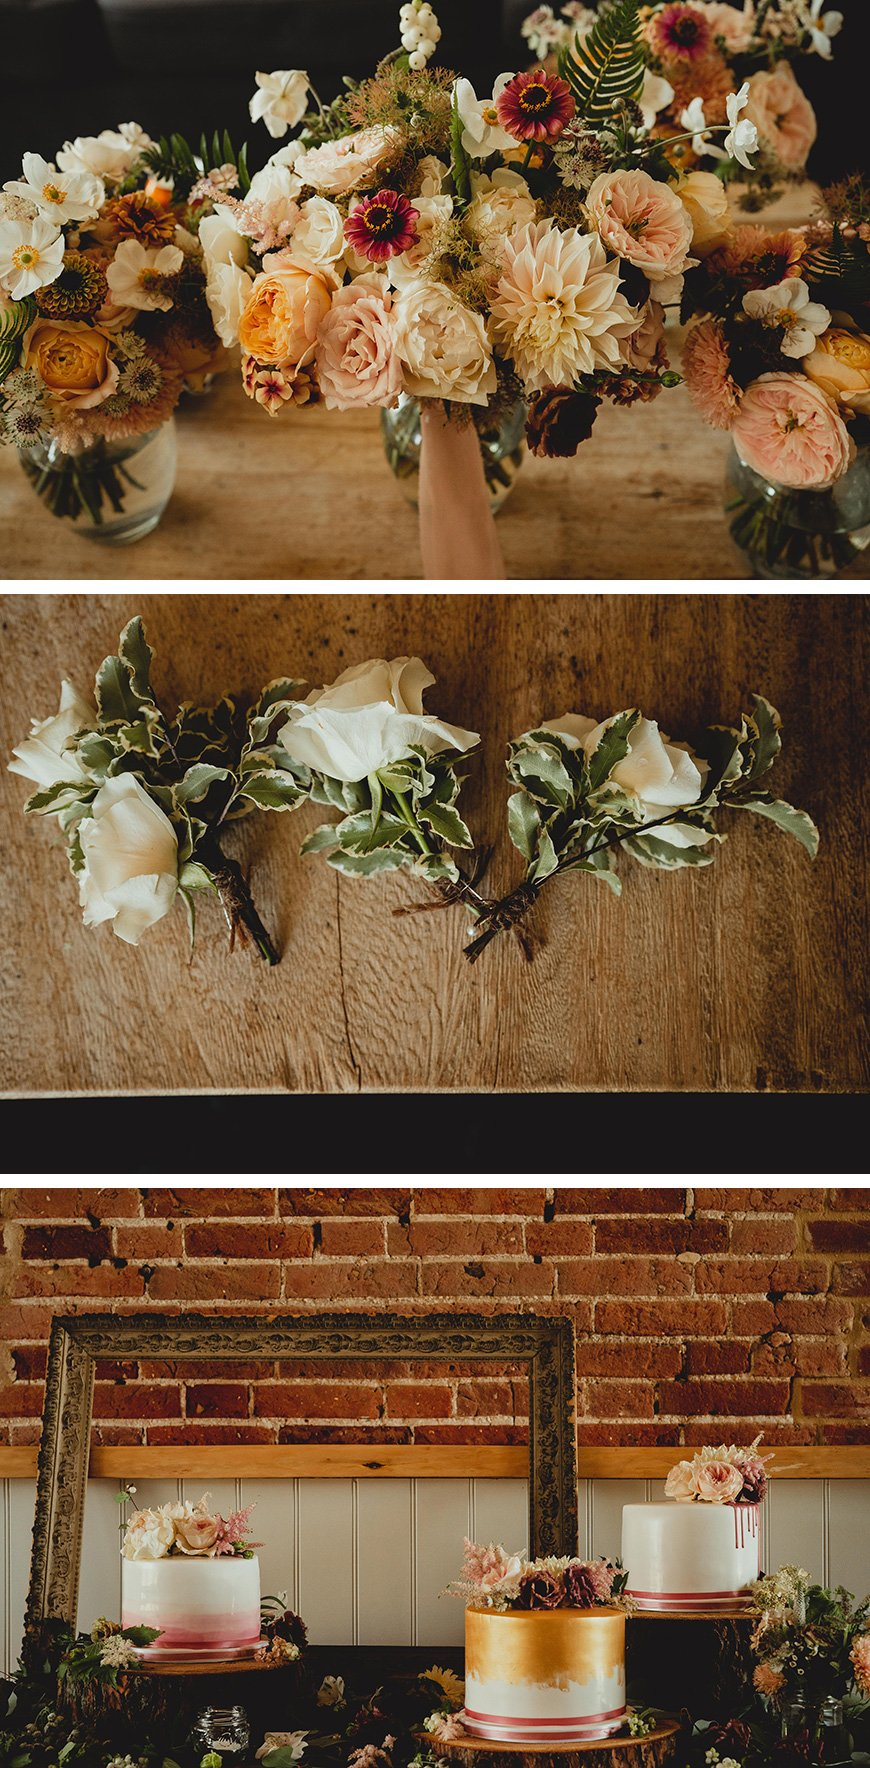 Real Wedding - Kim and Glen's Floral Manor Mews Wedding | CHWV